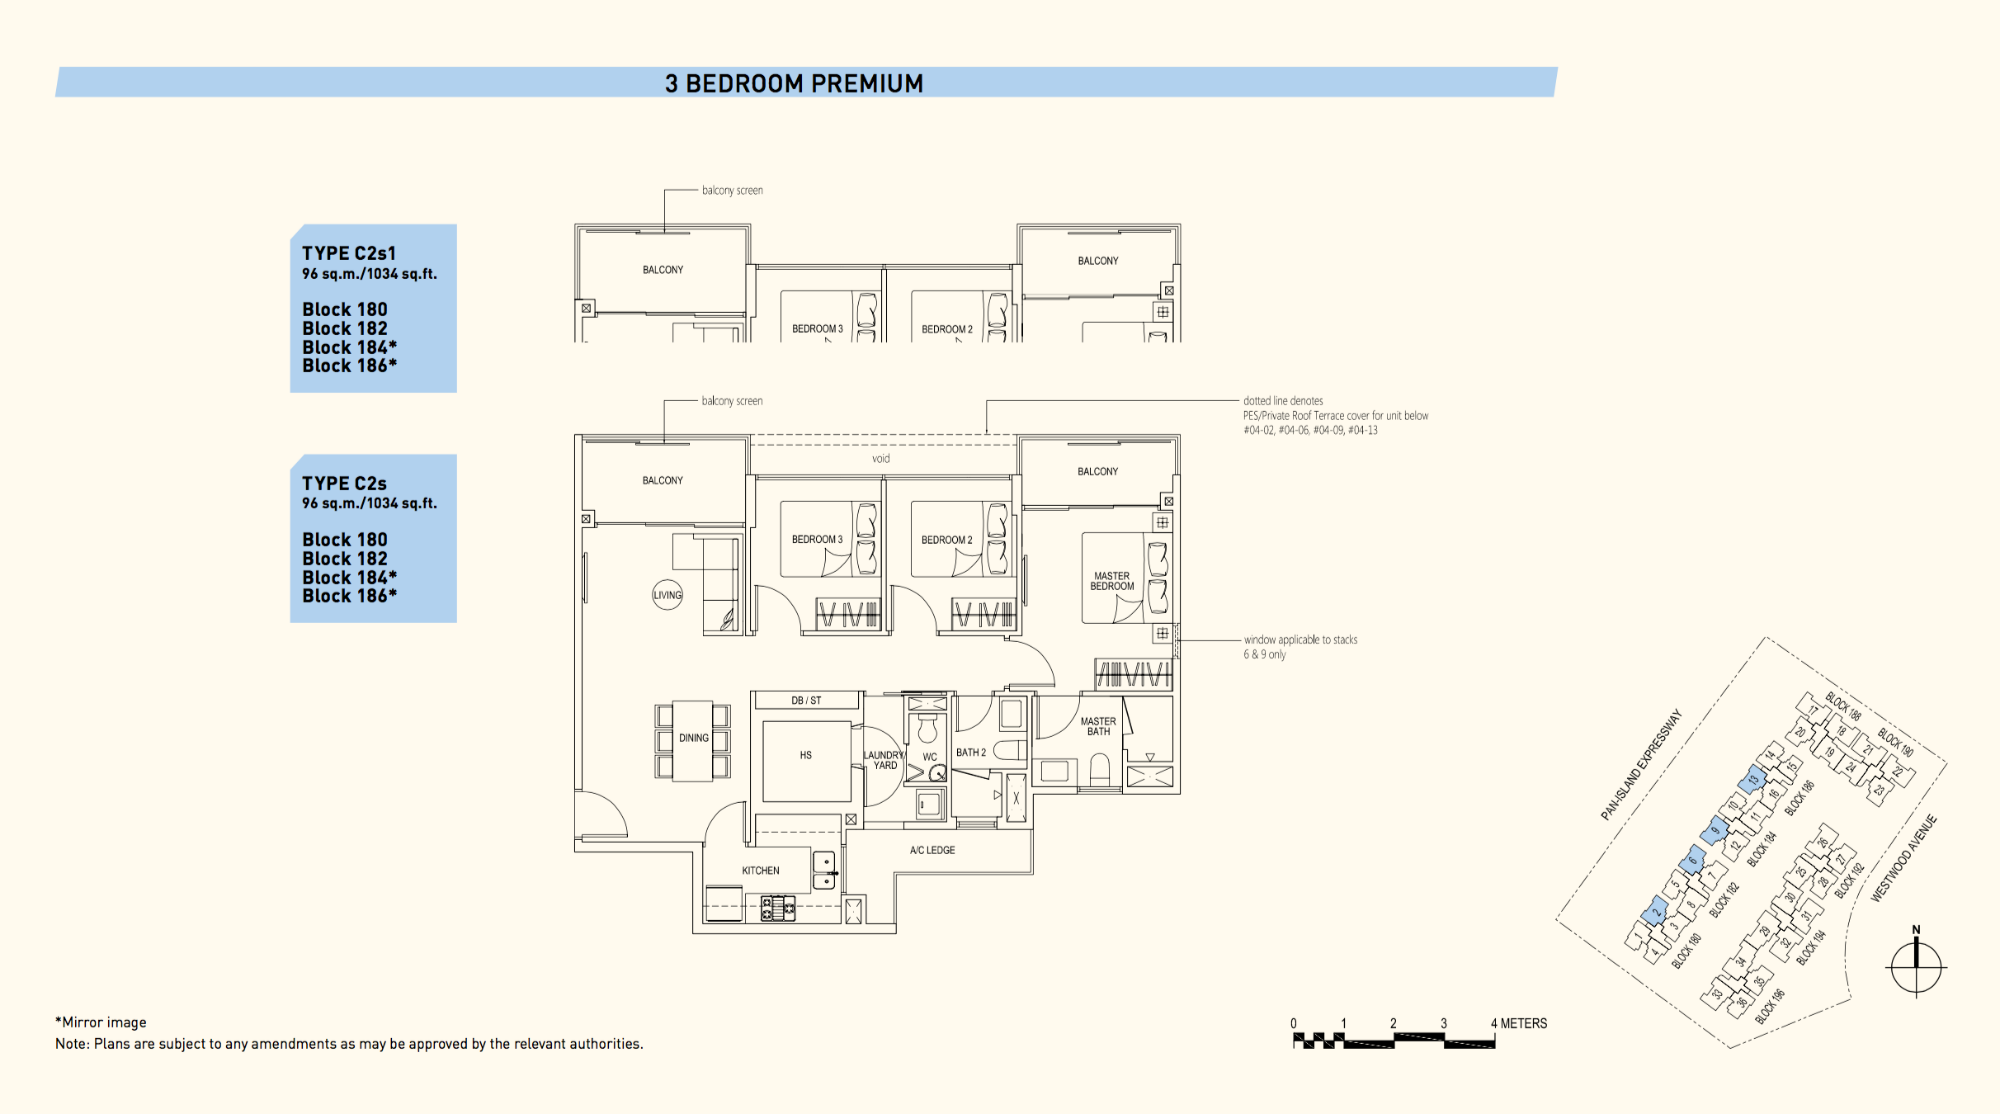 Westwood Residences EC Floor Plan 3 Bedroom Premium C2s 96 sqm 1034 sqft